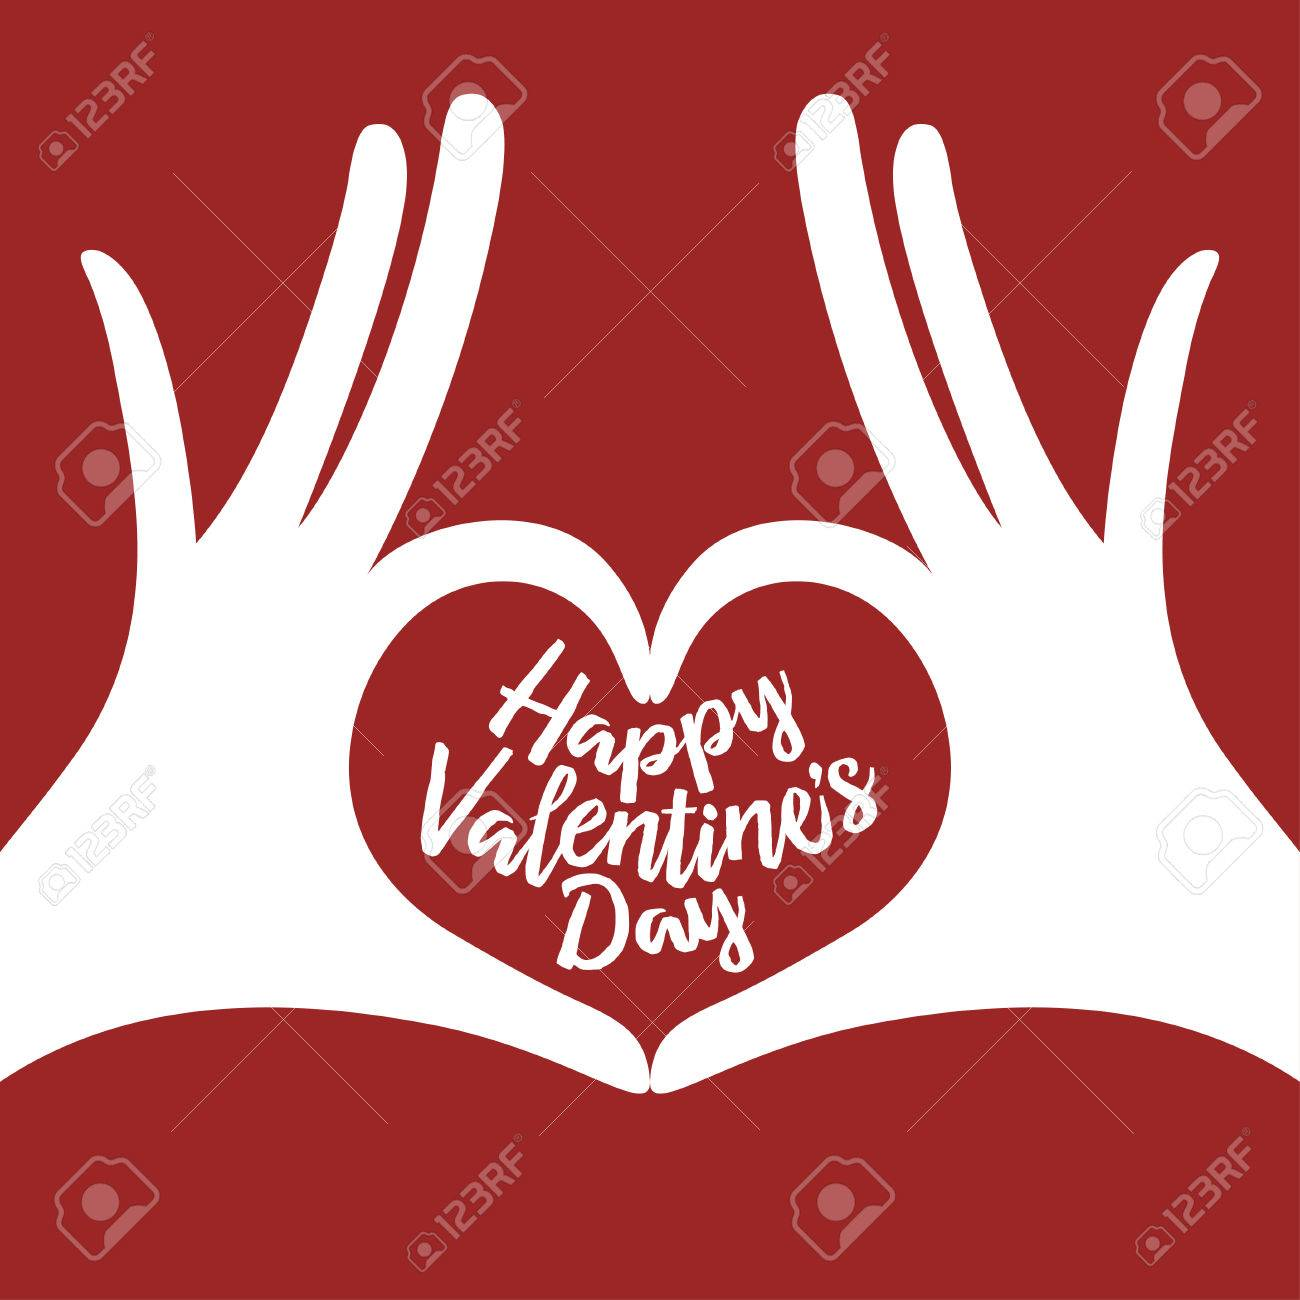 Valentine Day Lettering Background With Hands In Heart Gesture